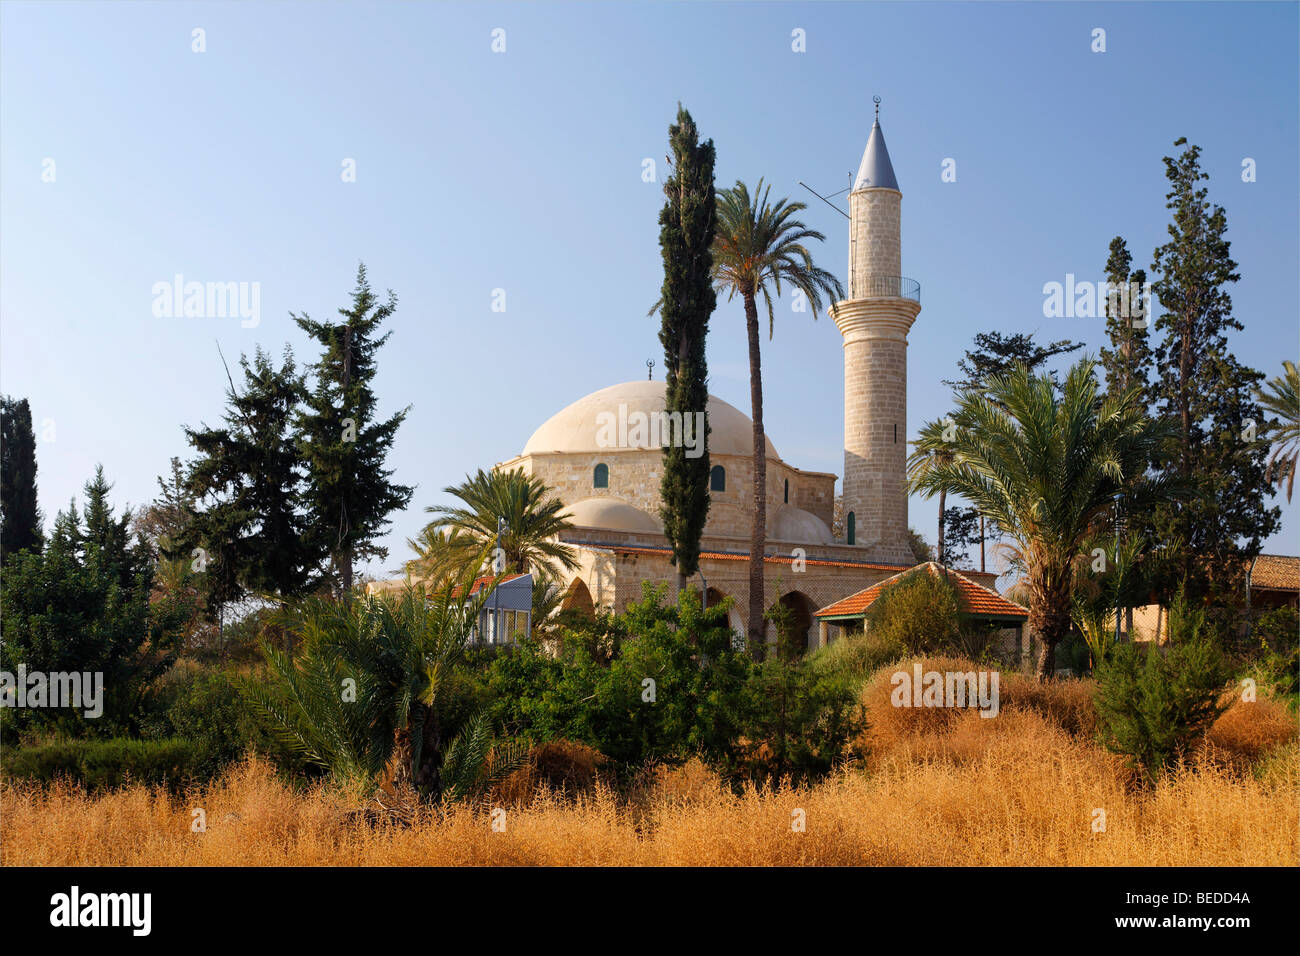 Hala Sultan Tekke Mosque, fourth most important islamic pilgrimage site, Larnaca, Cyprus, Asia - Stock Image